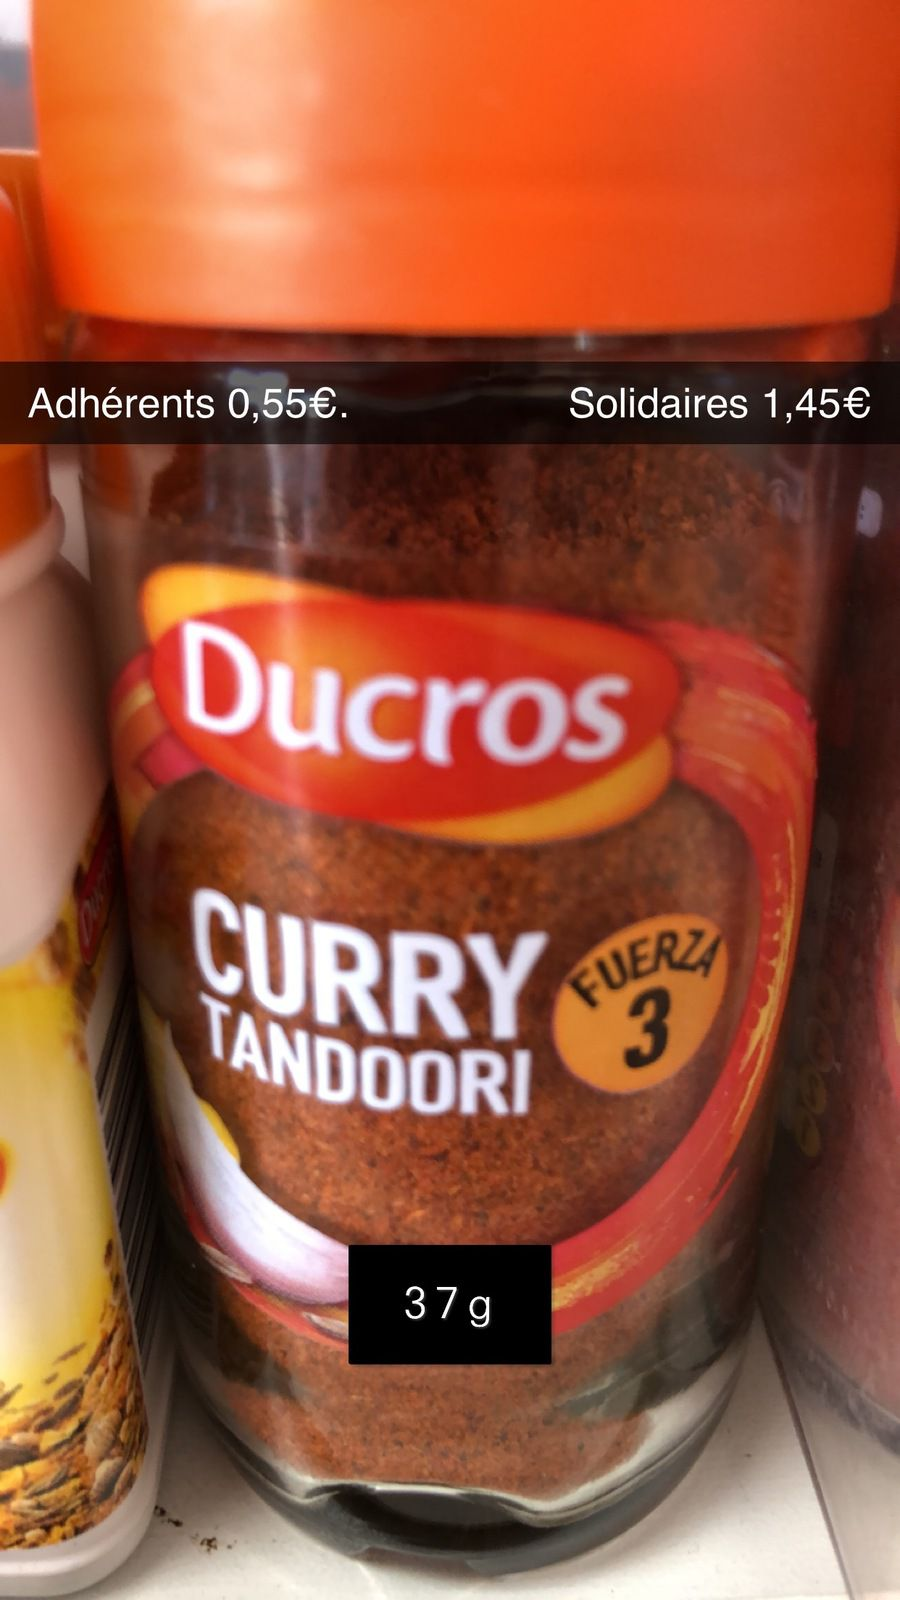 Curry Tandoori - 37g